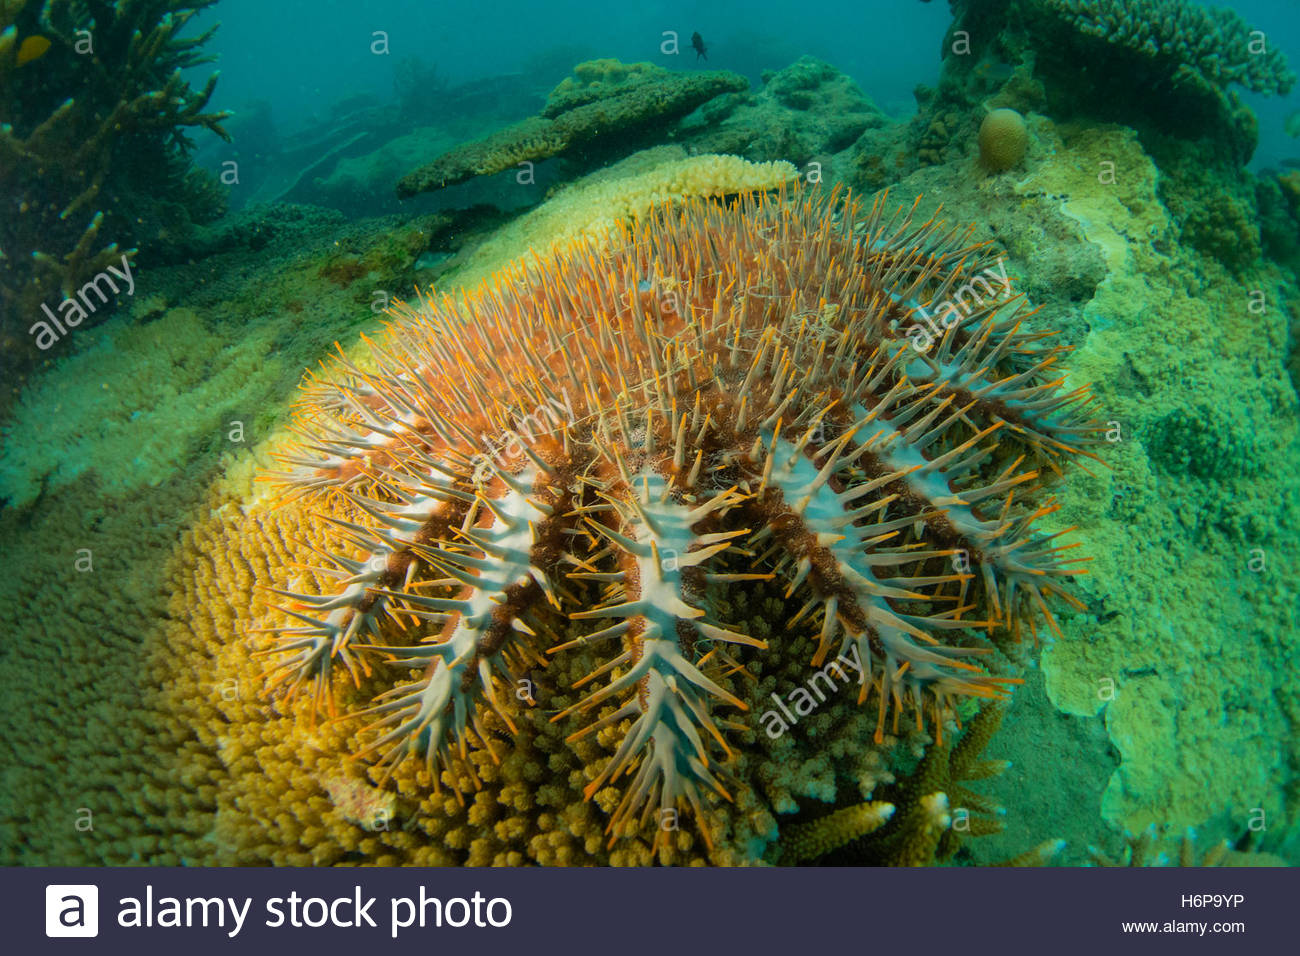 Underwater view of a crown-of-thorns starfish on a tropical reef. - Stock Image